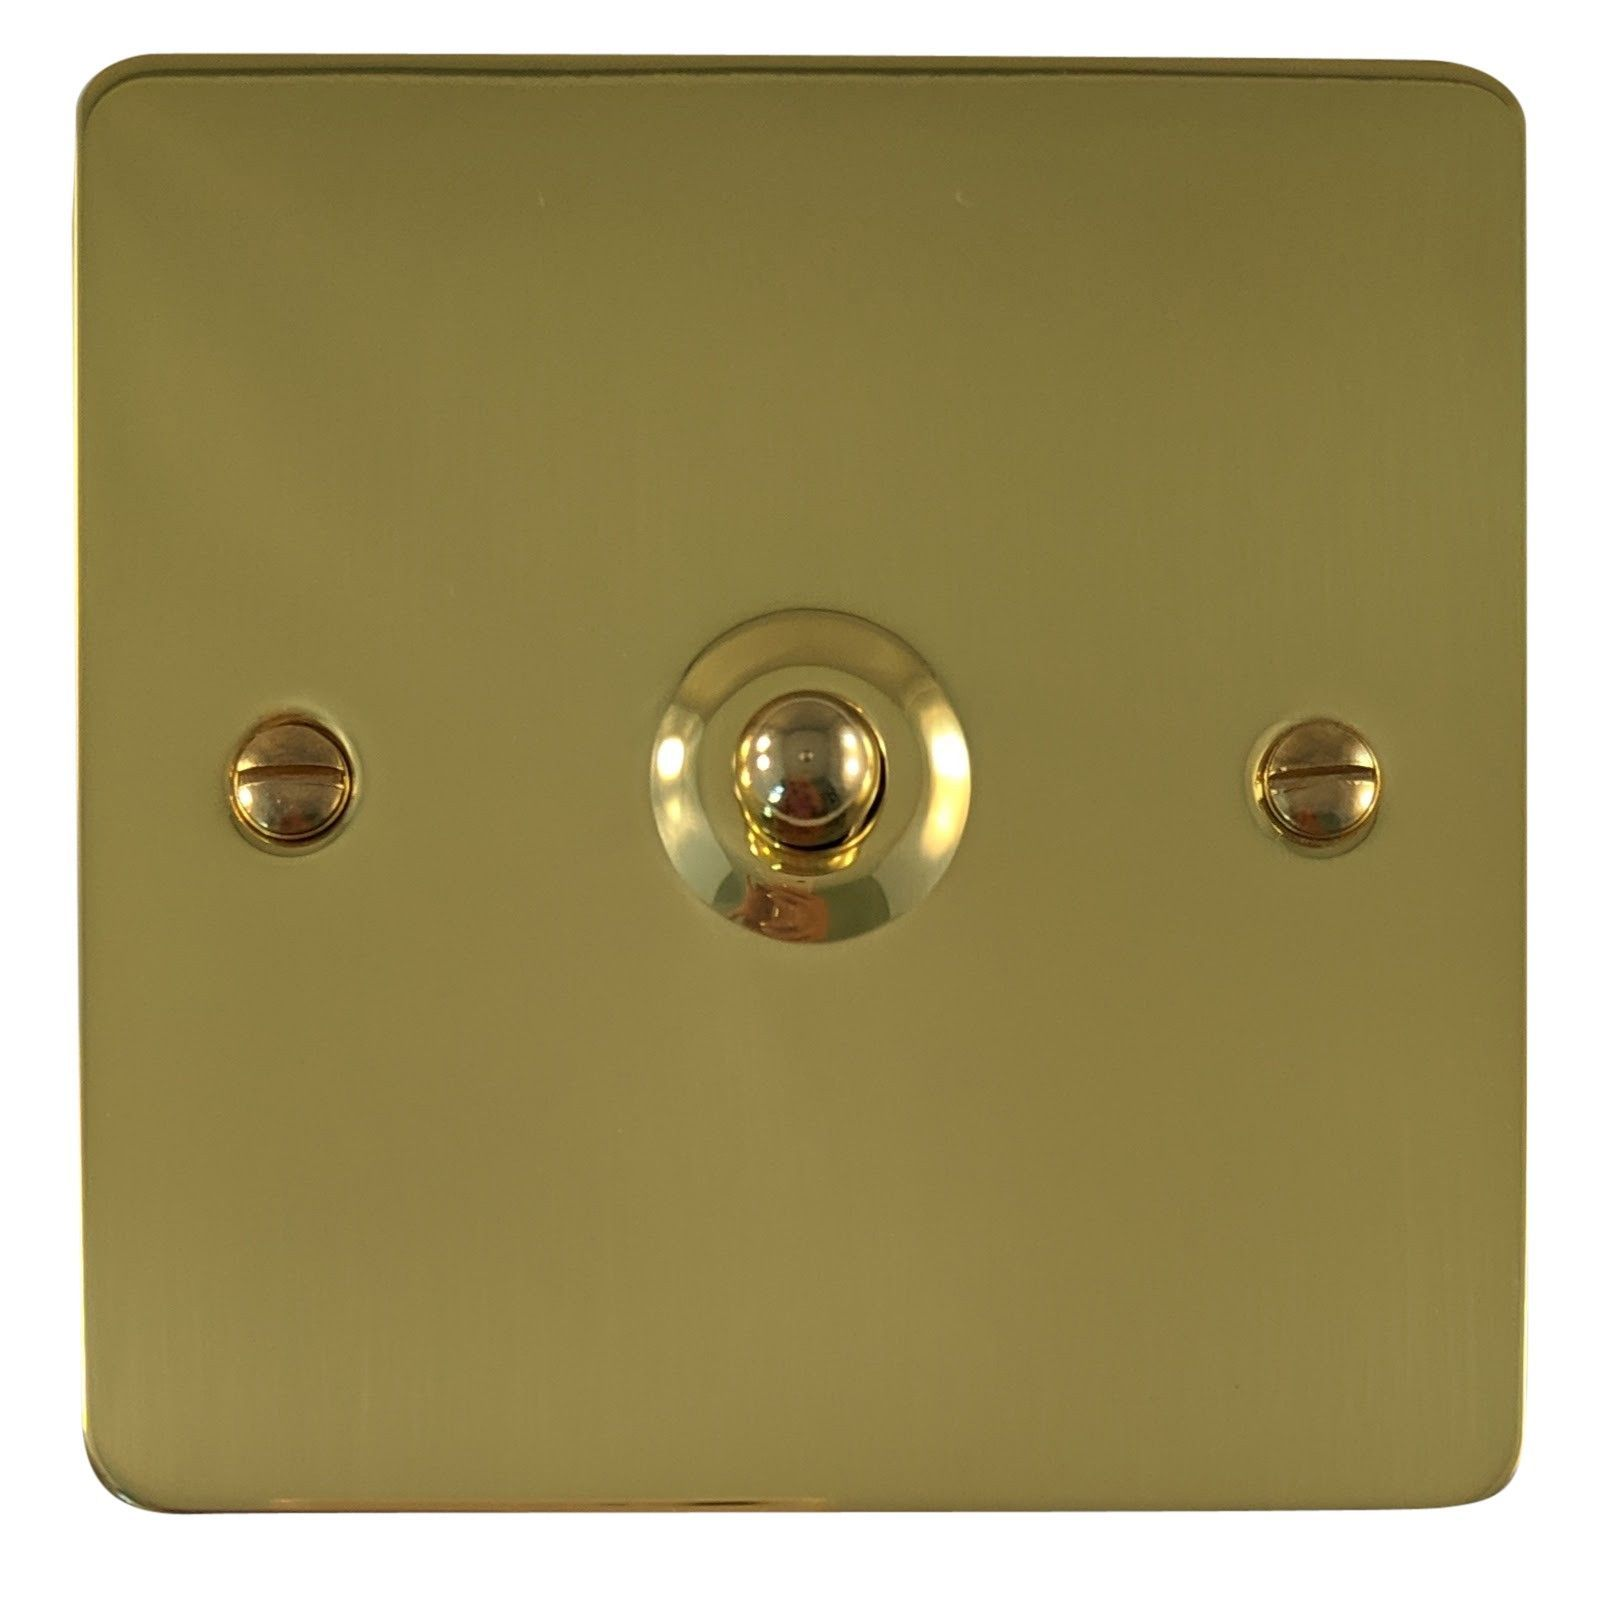 G&H FB285 Flat Plate Polished Brass 1 Gang Intermediate Toggle Light Switch